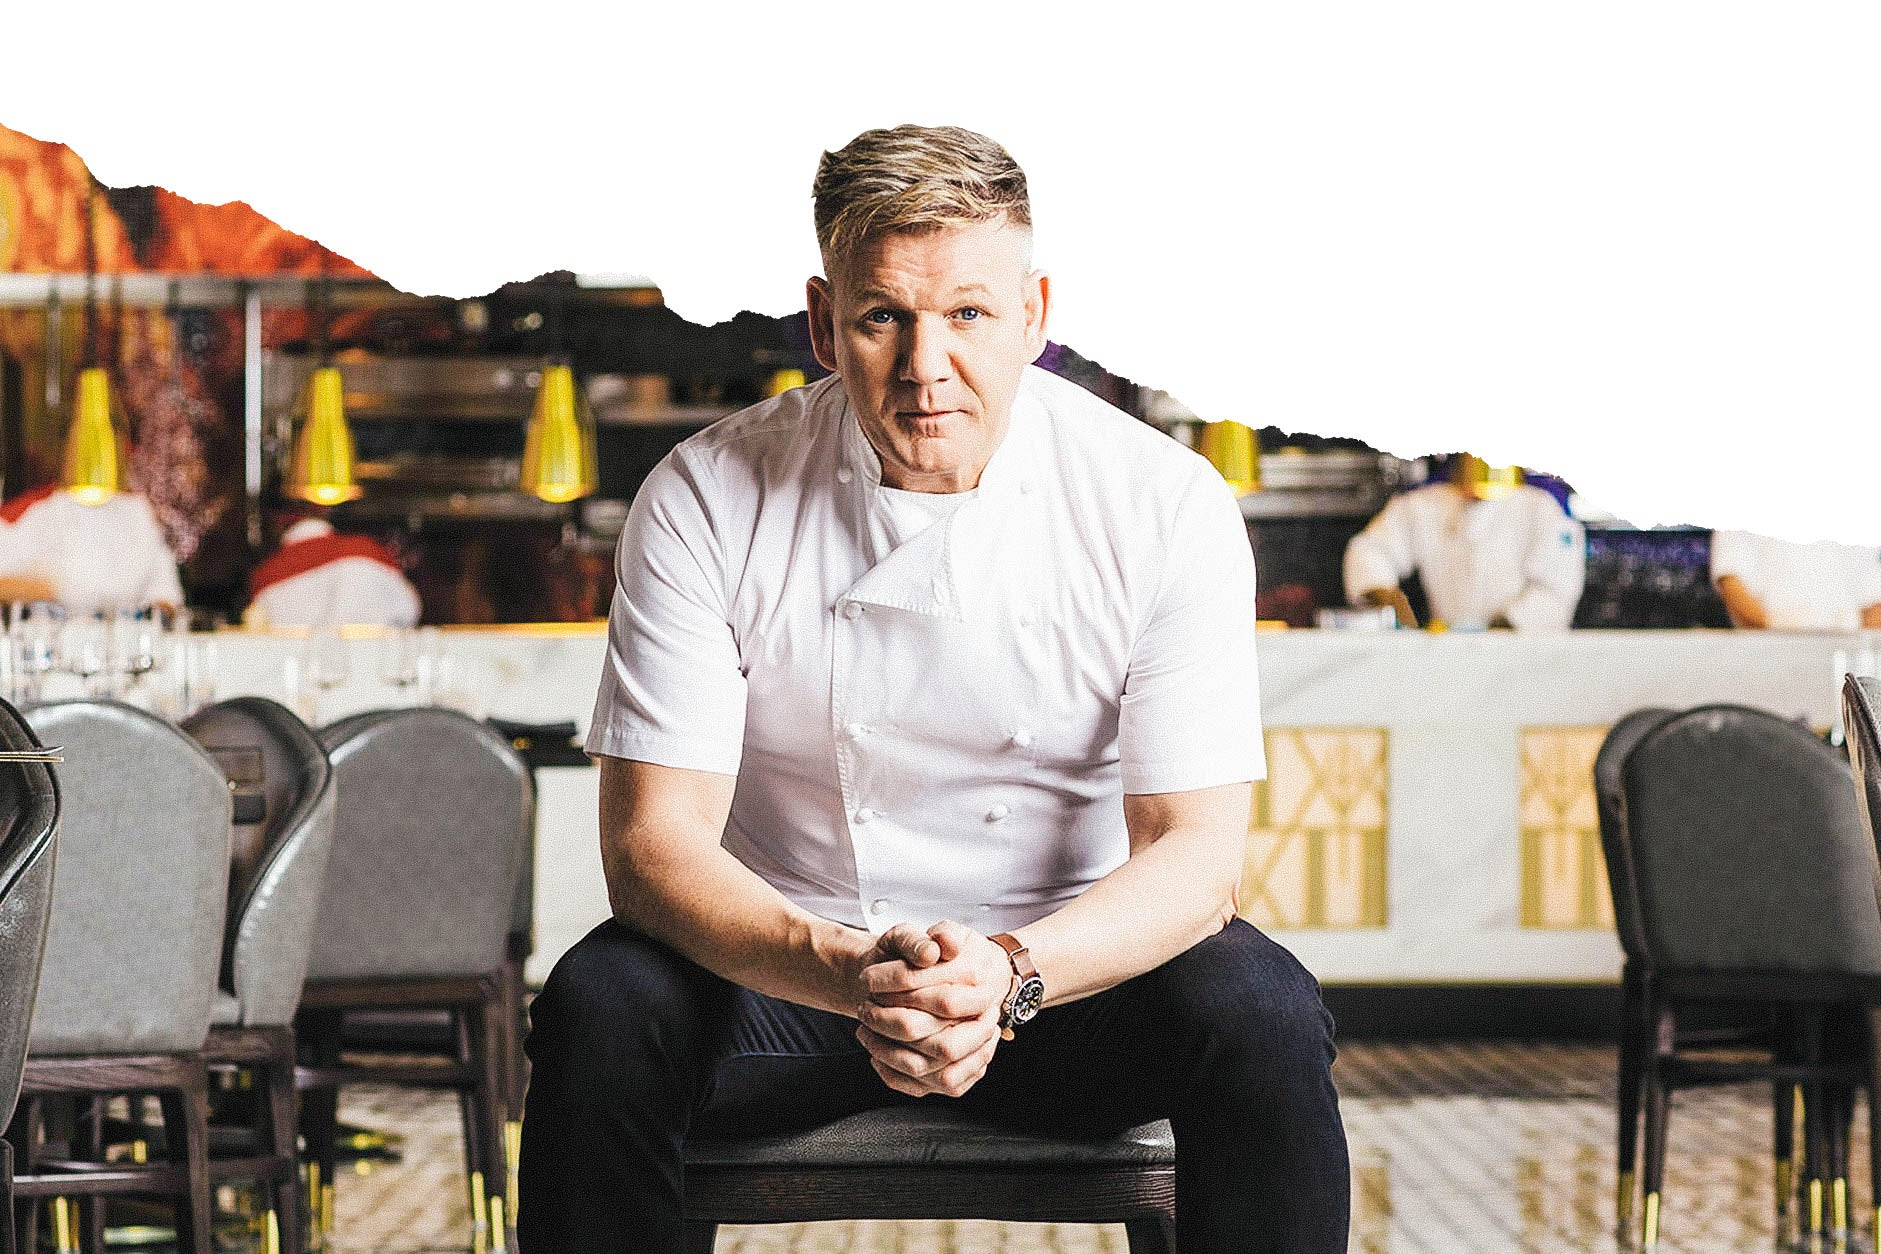 Gordon Ramsay facing forward, sitting in a chair in a restaurant.